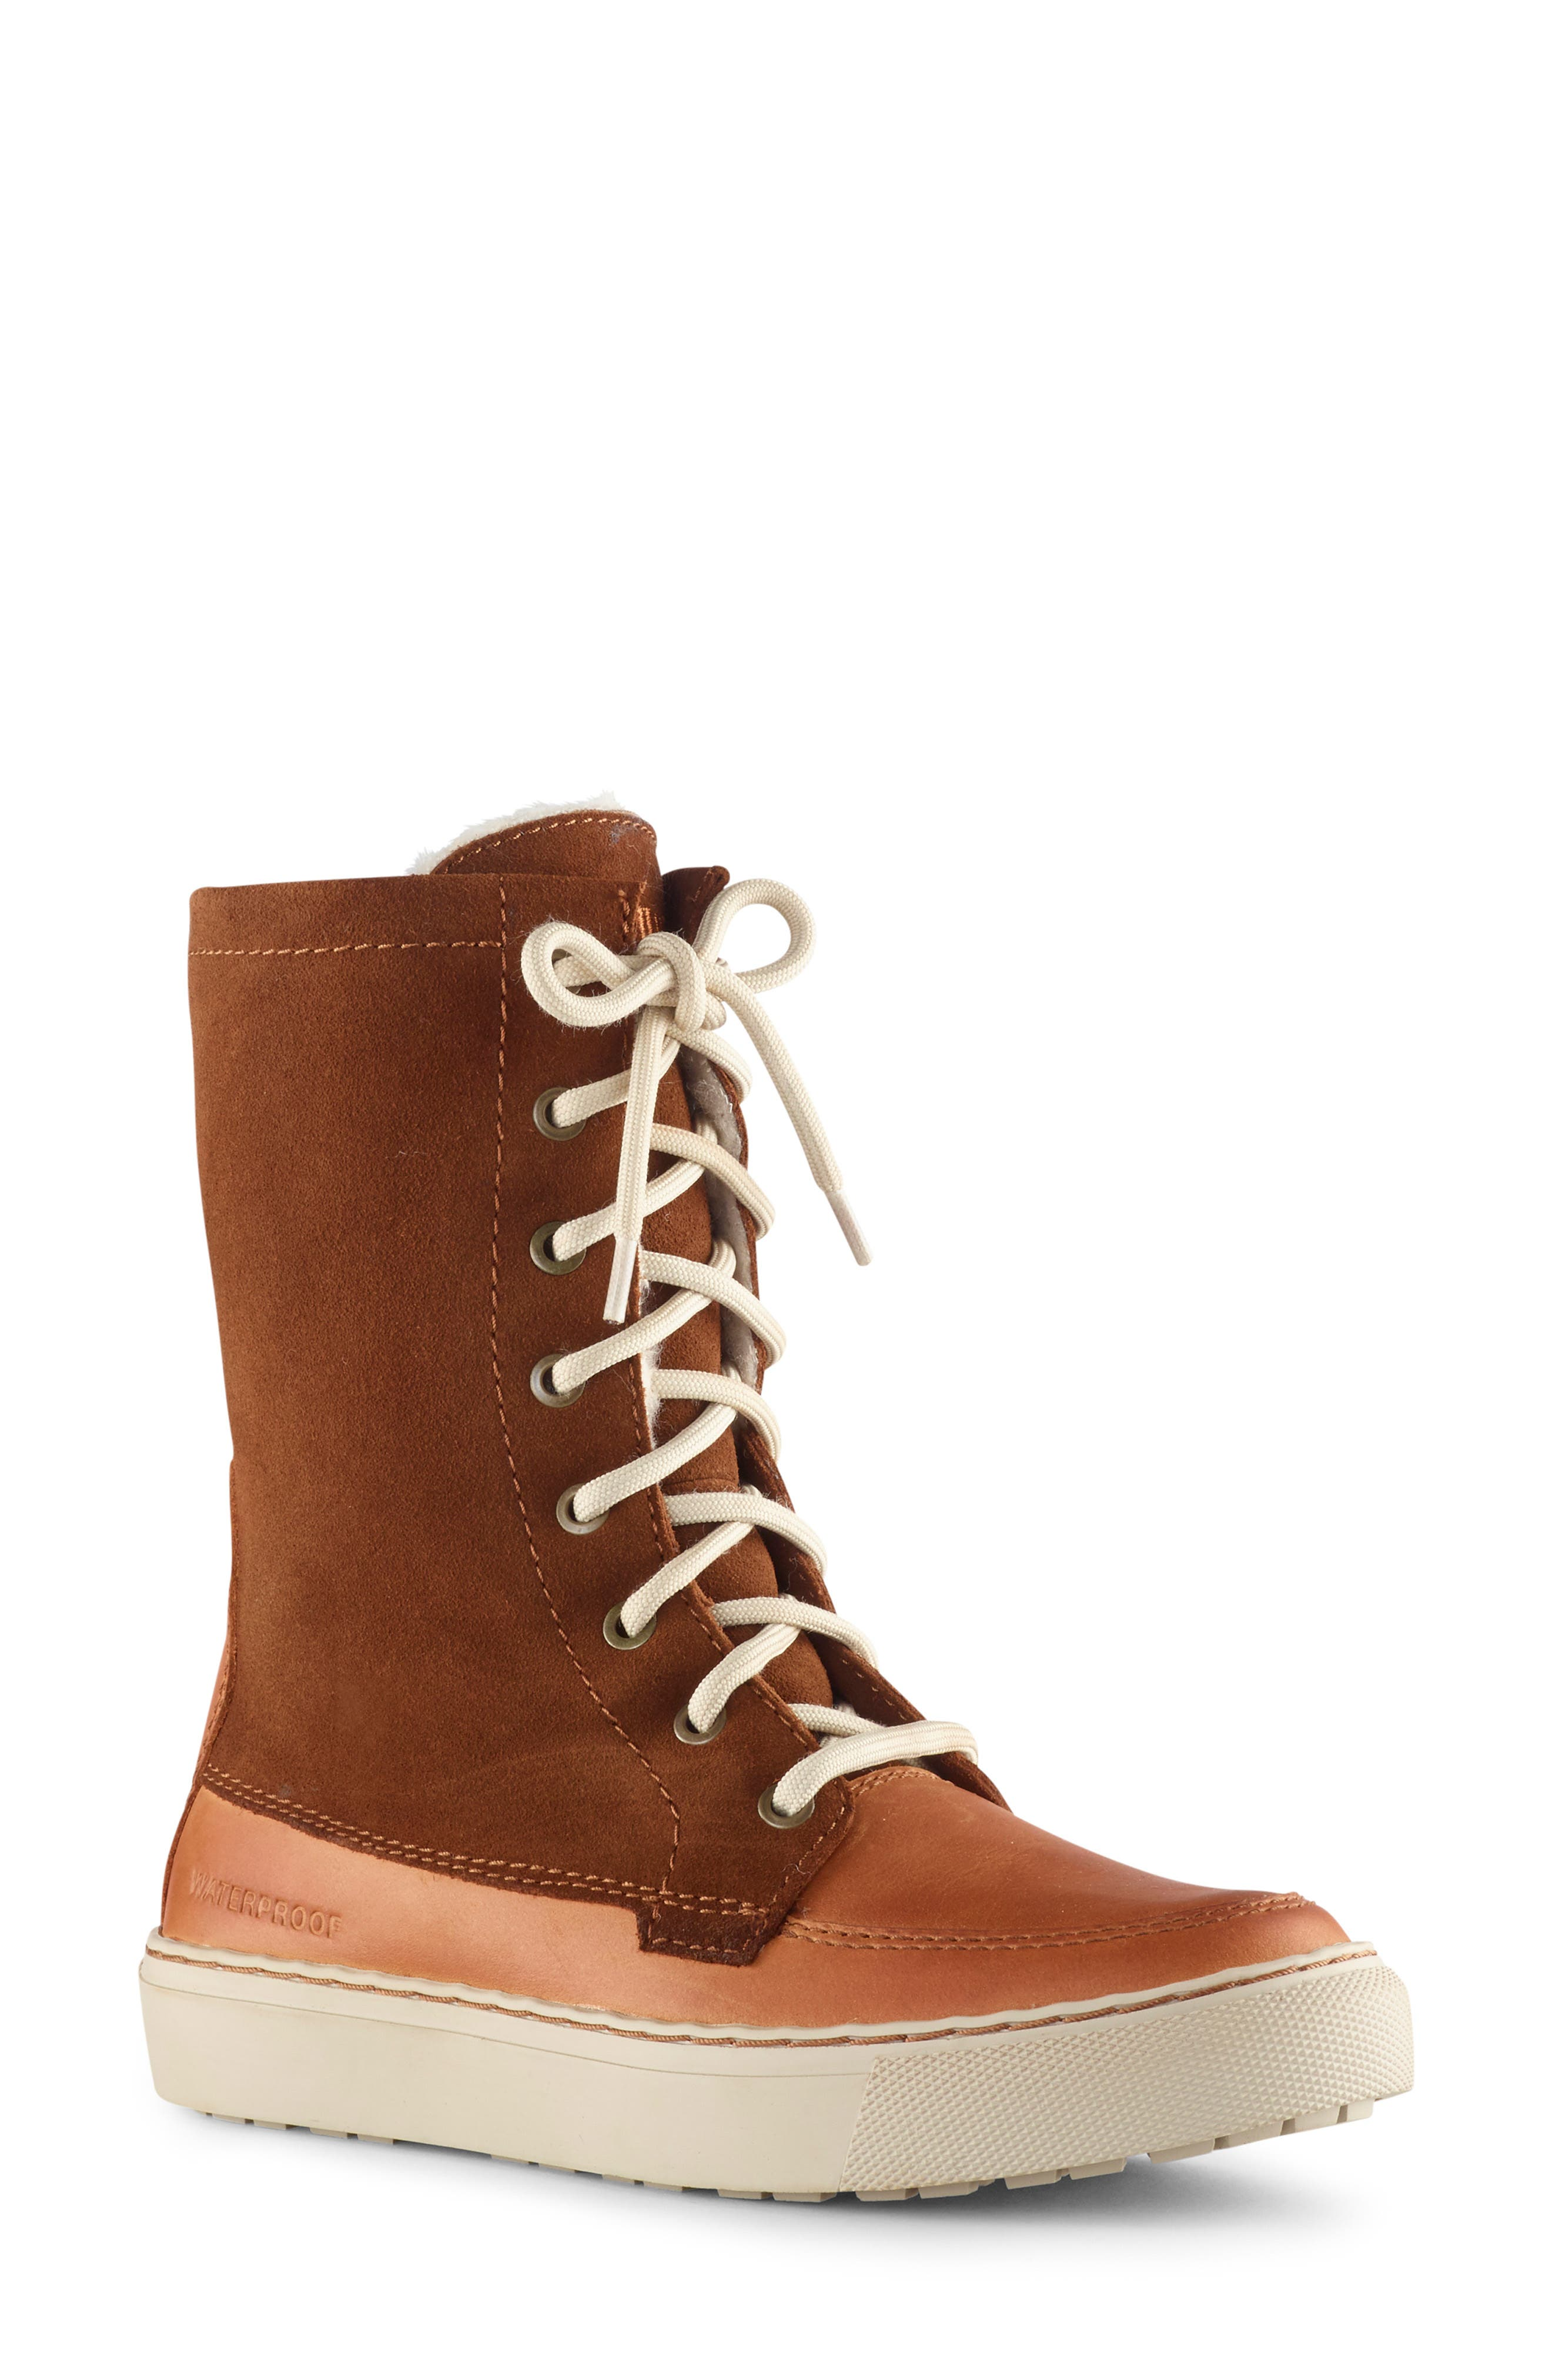 Cougar Donato Waterproof Winter Boot With Faux Fur Lining, Brown